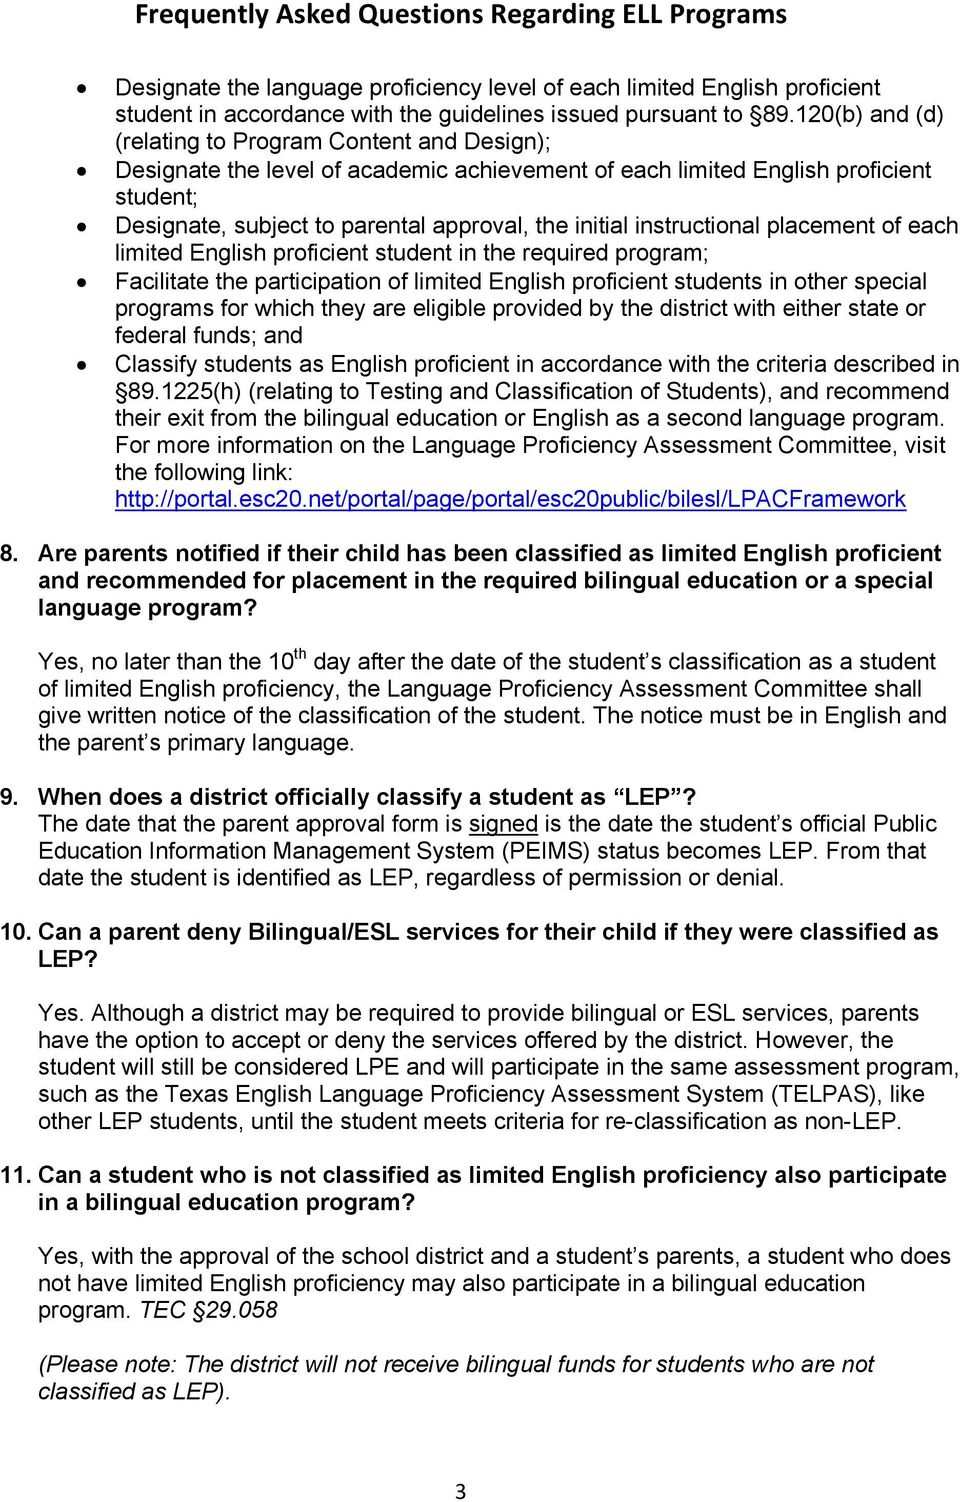 instructional placement of each limited English proficient student in the required program; Facilitate the participation of limited English proficient students in other special programs for which